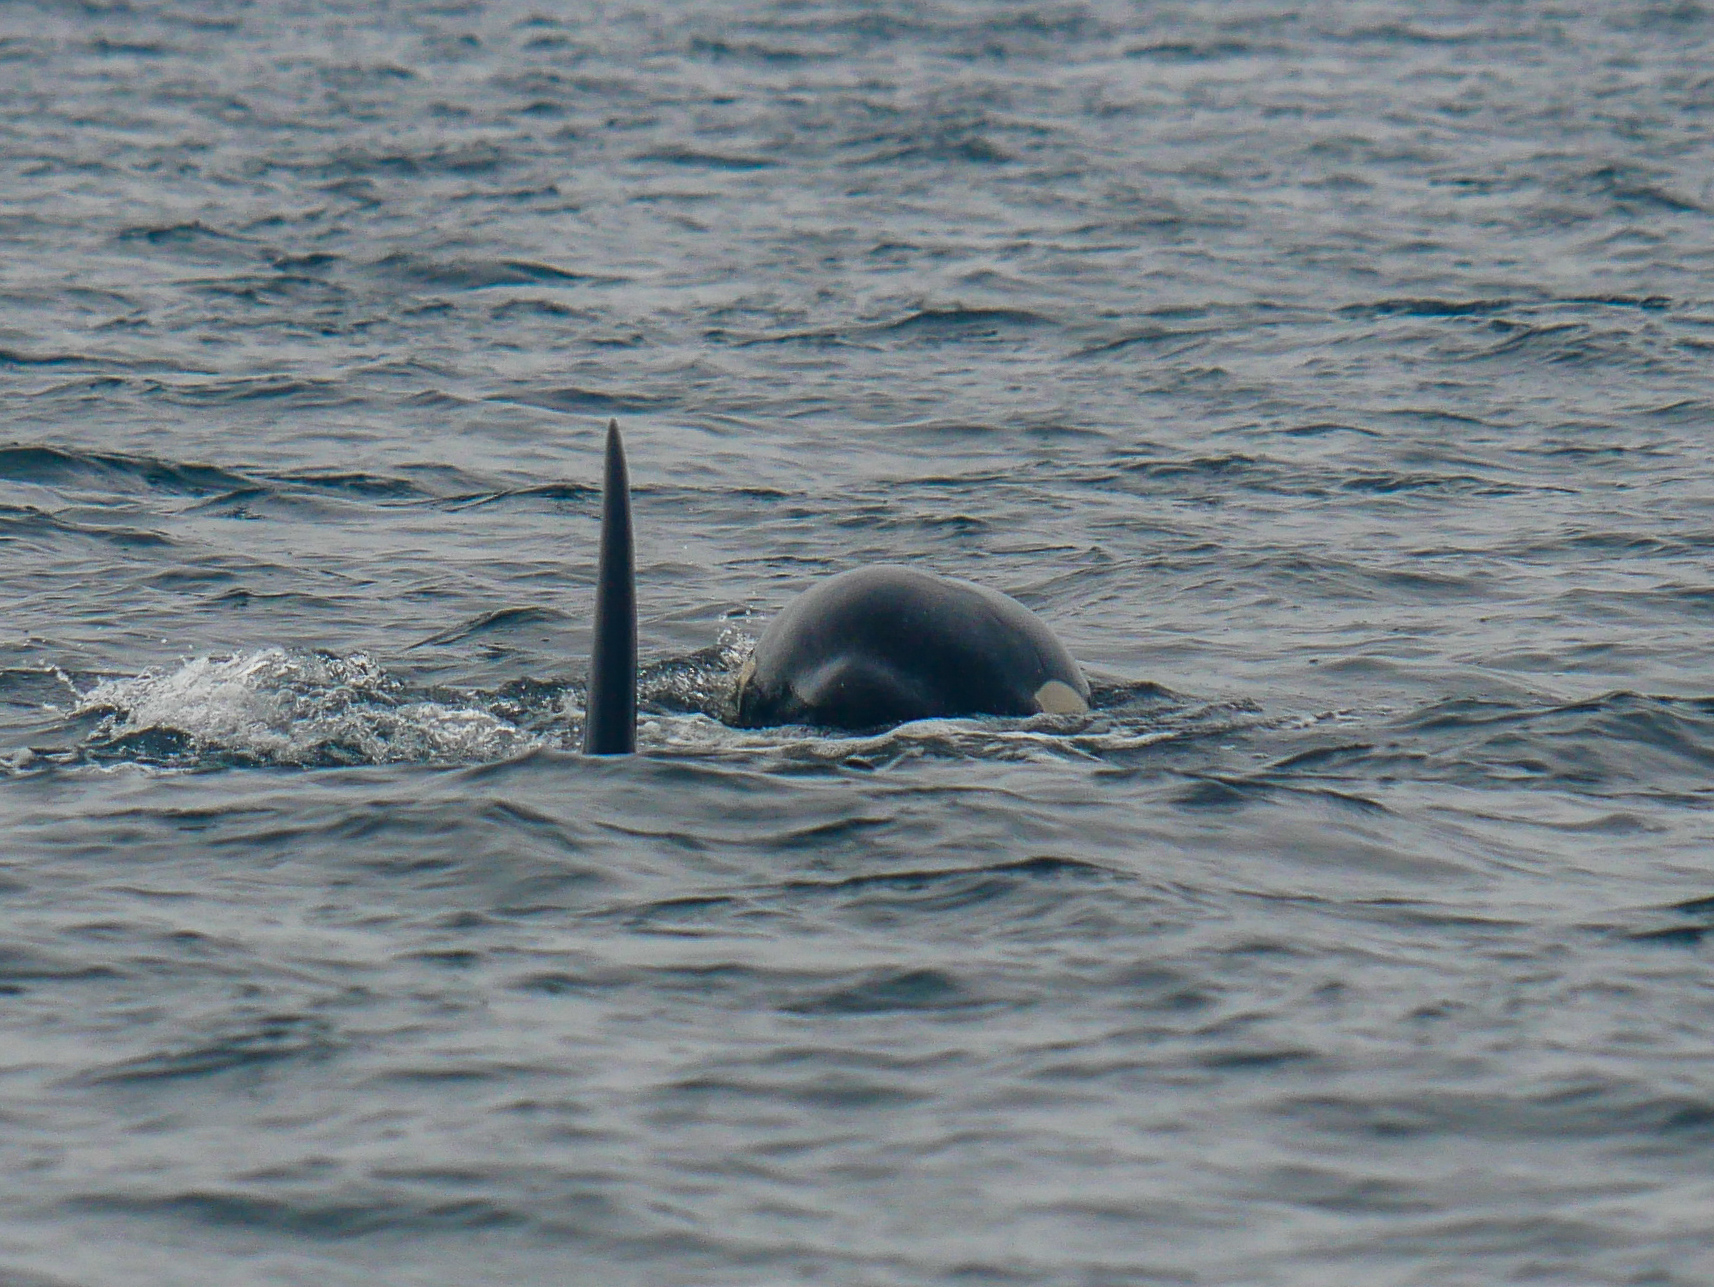 Peek-a-boo! Catching the beginning of a surface from the orca on the right. Photo by Rodrigo Menezes - 3:30 tour.